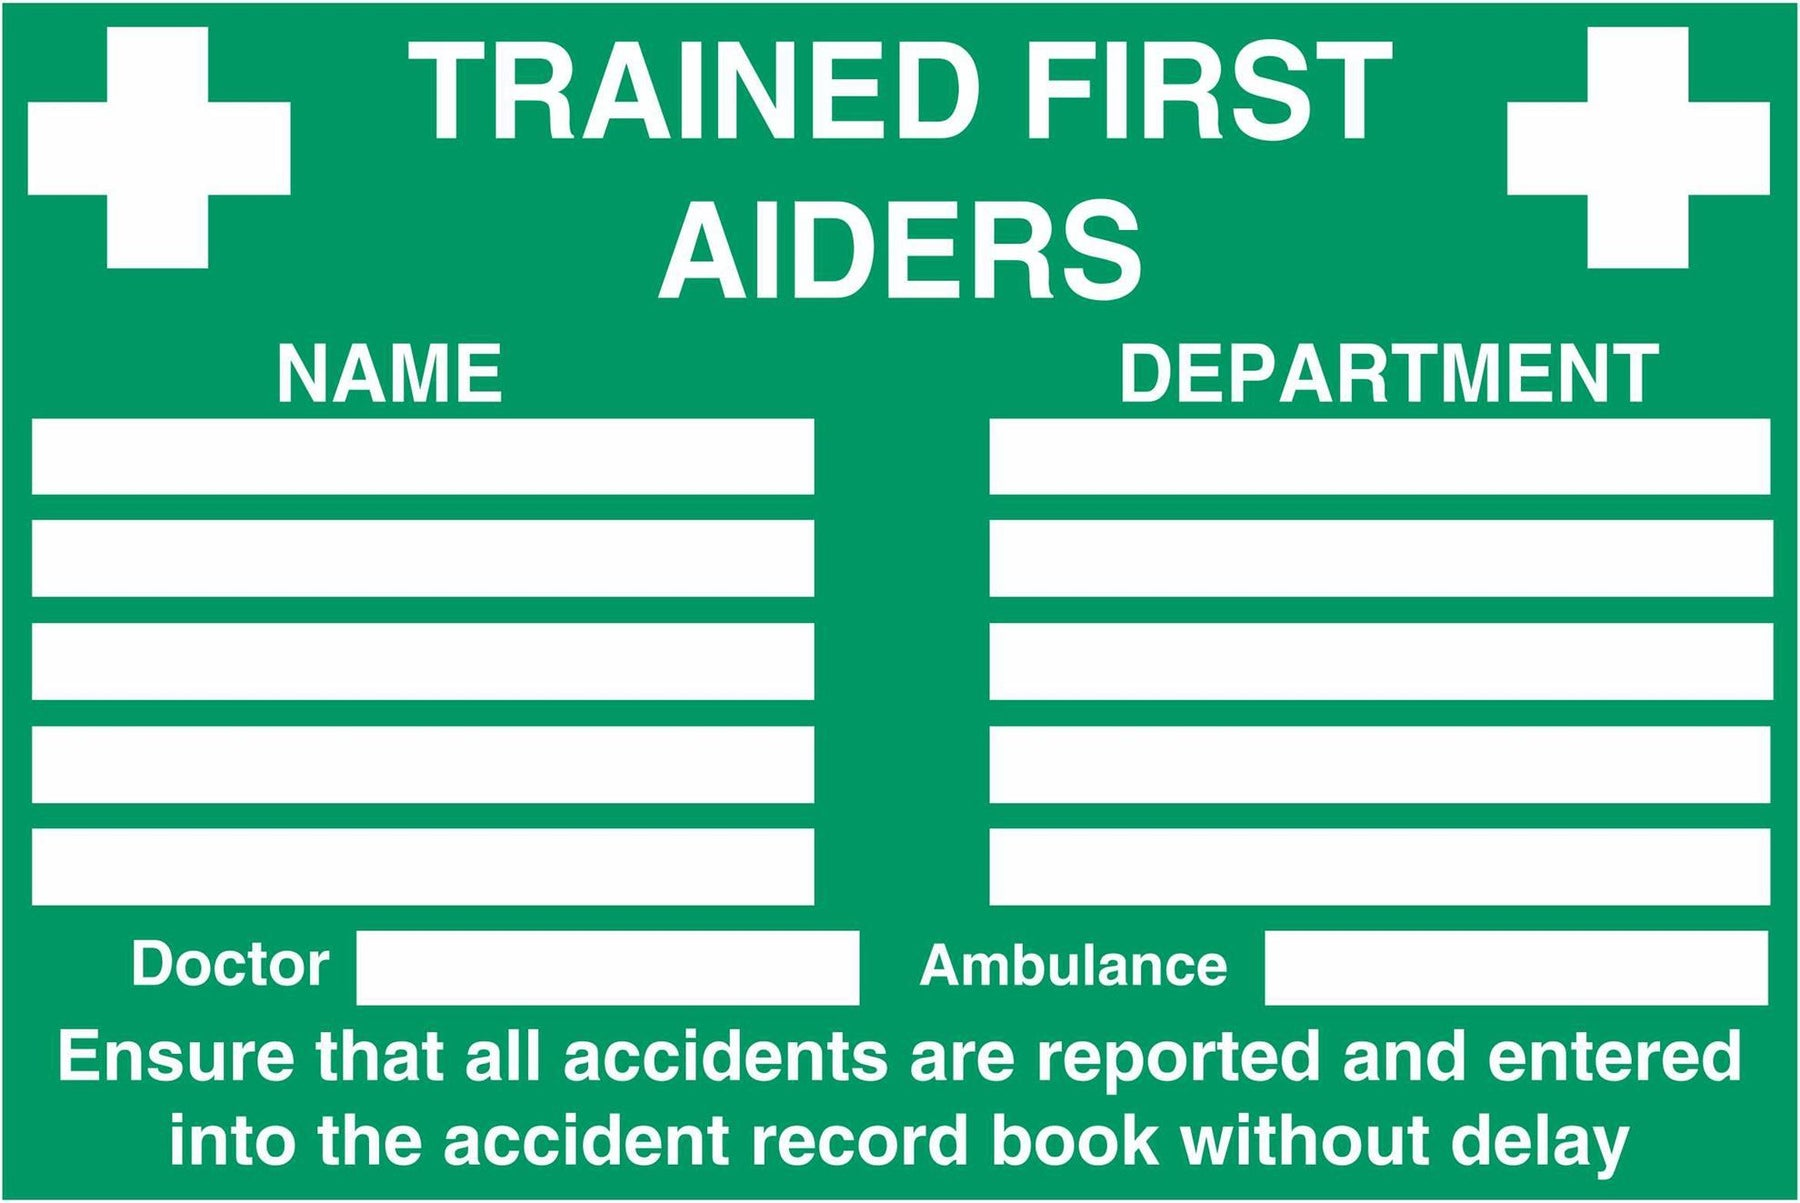 TRAINED FIRST AIDERS